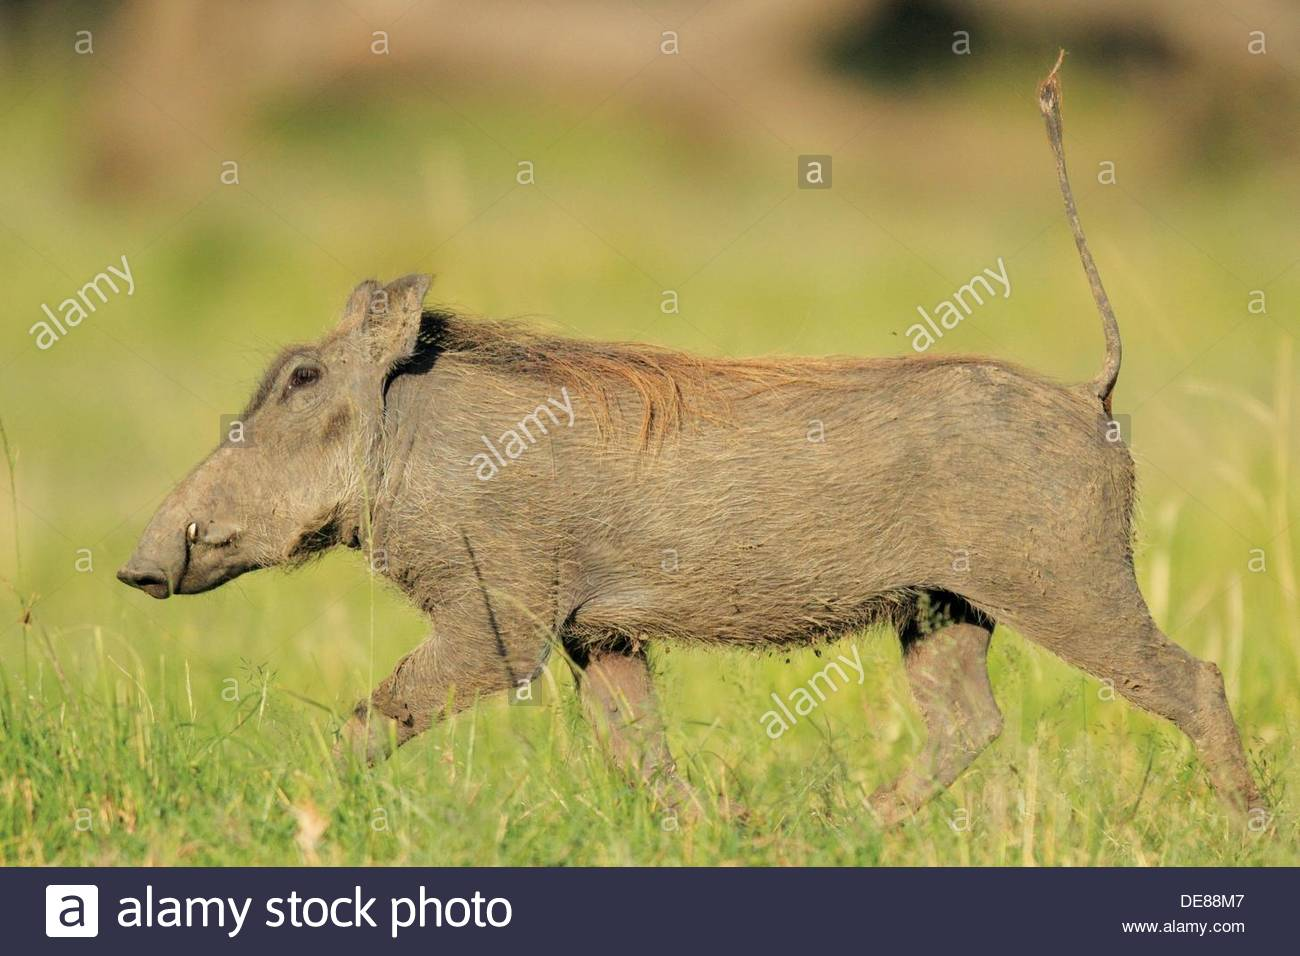 Any slight disturbance makes the warthog flee with his tail resmbling a radio antenna. - Stock Image